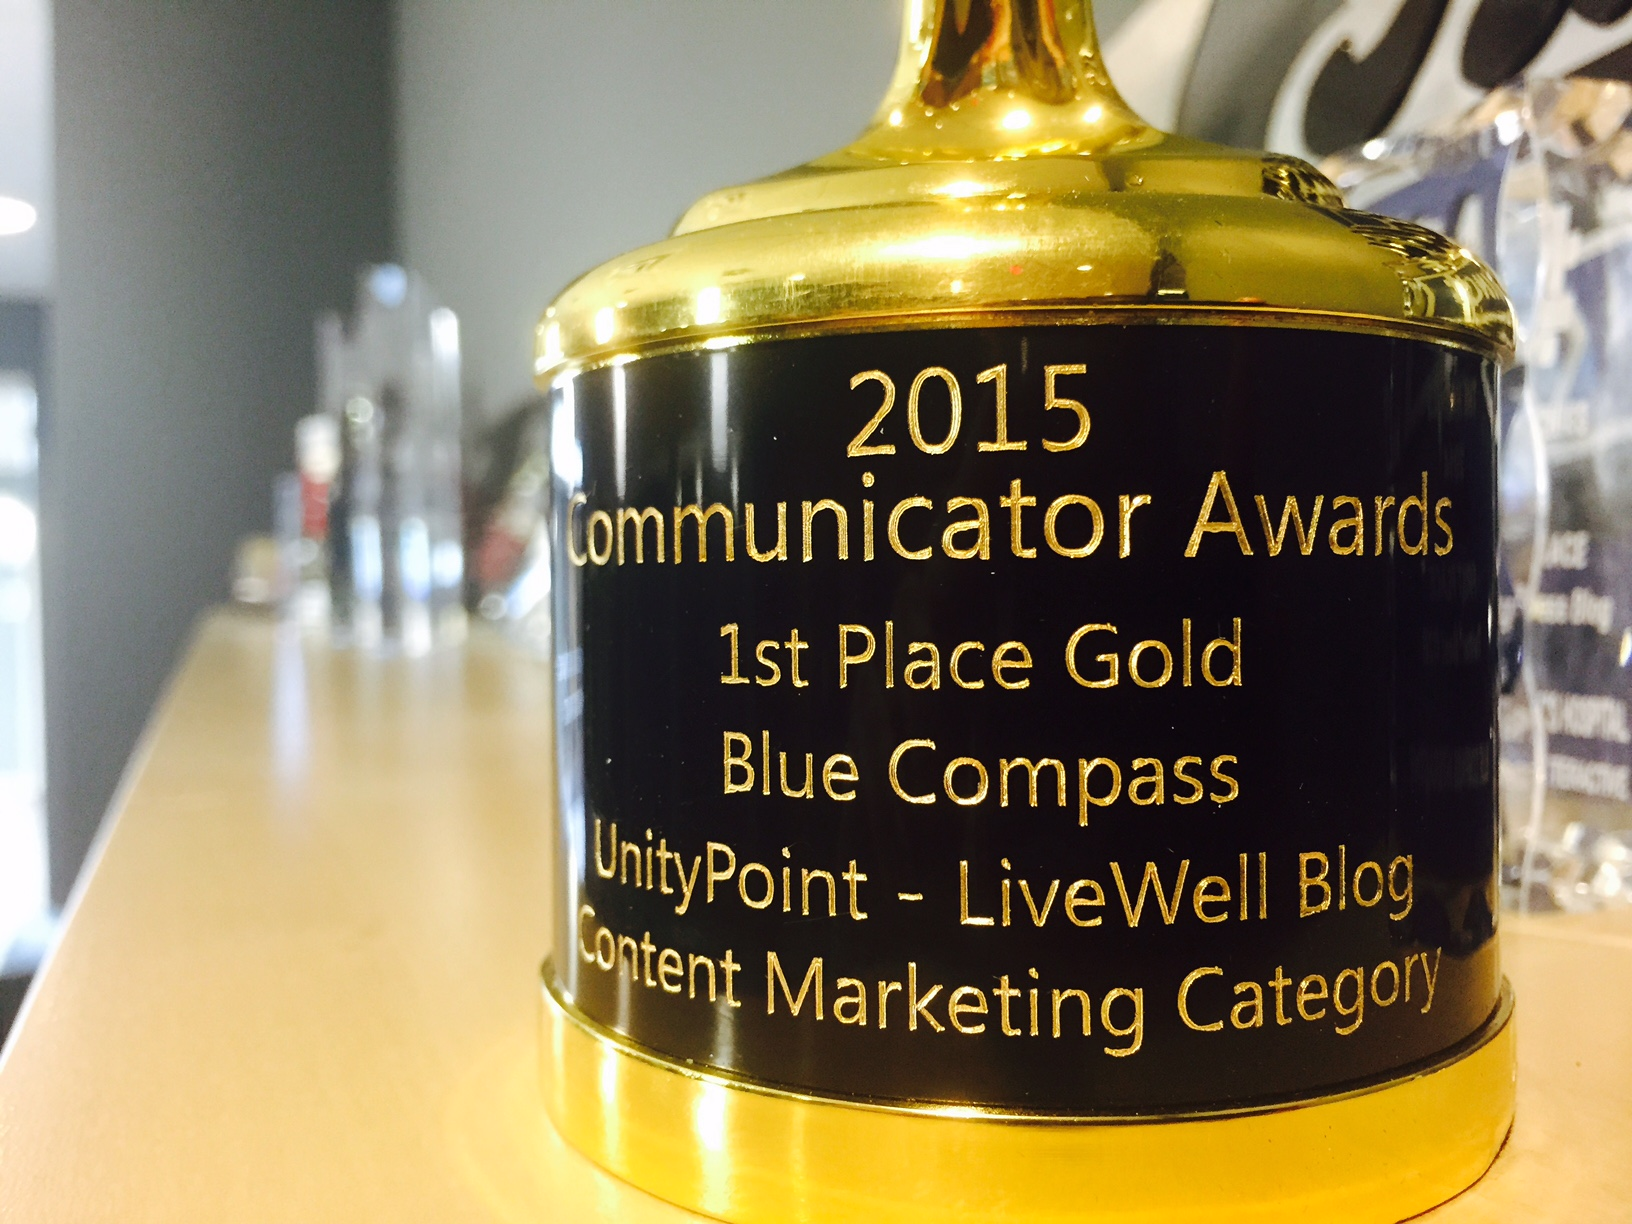 Close-up of Blue Compass Gold Excellence Award from The Communicator Awards